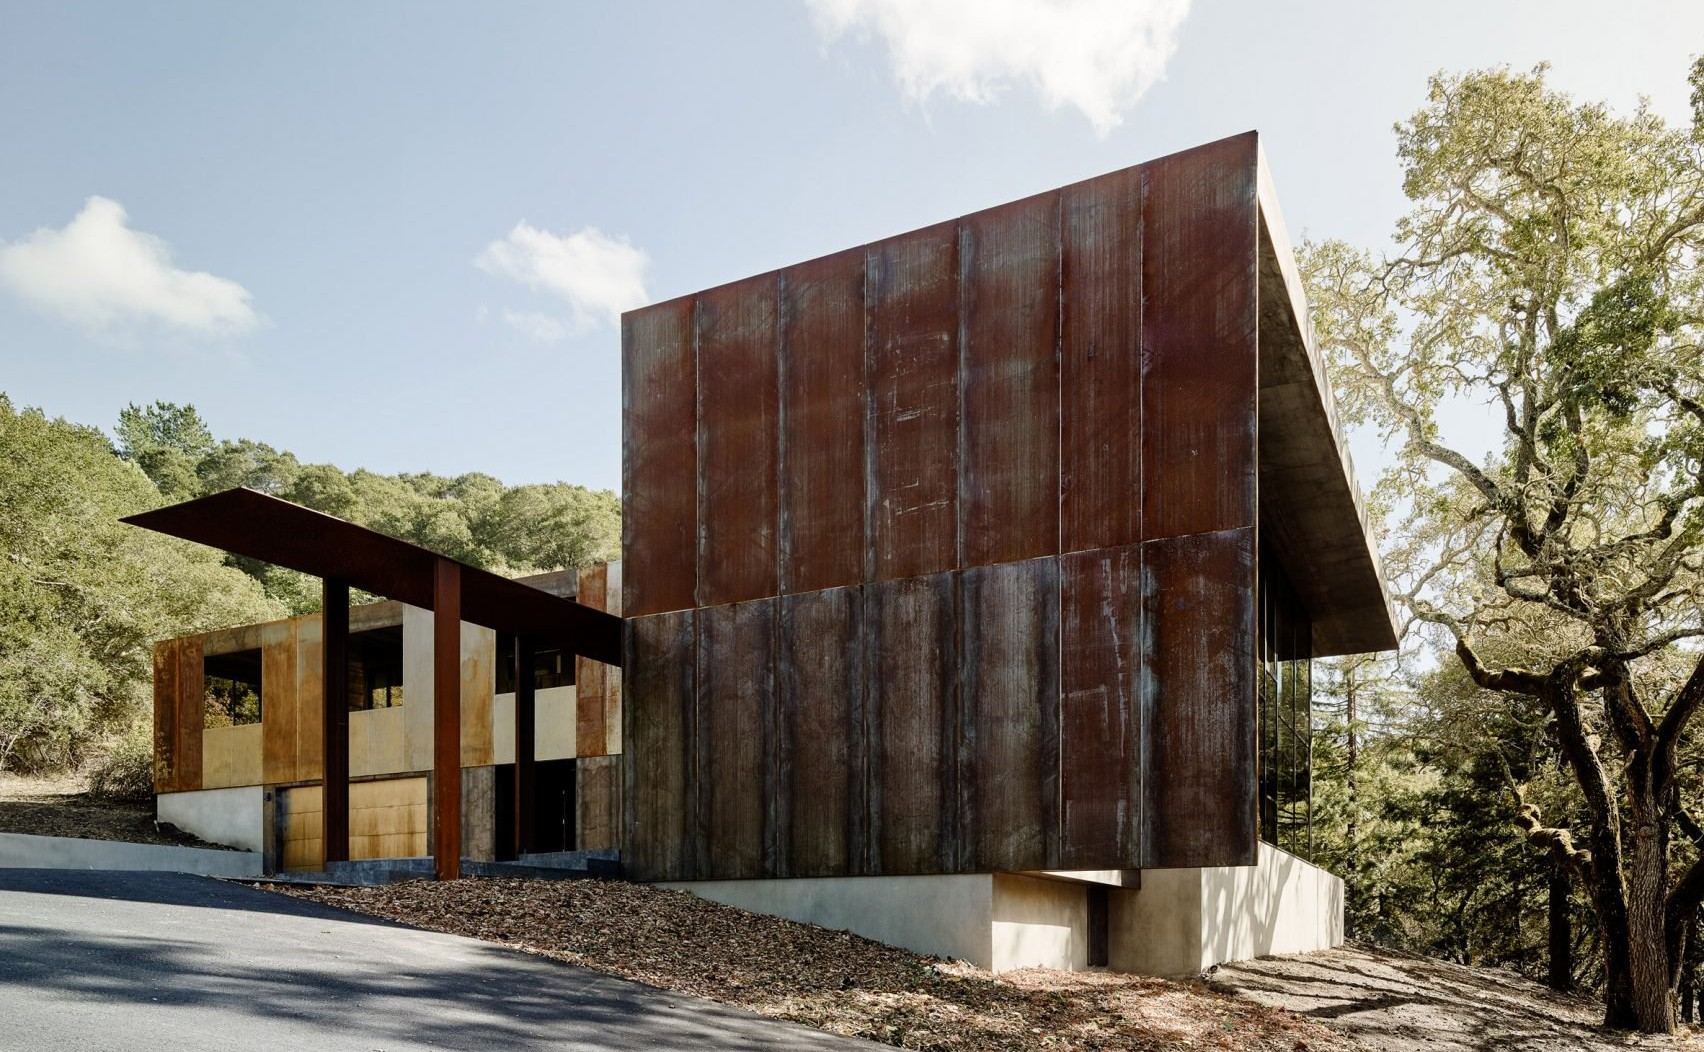 miner-road-faulkner-architects_dezeen_2364_col_26-1704x1275